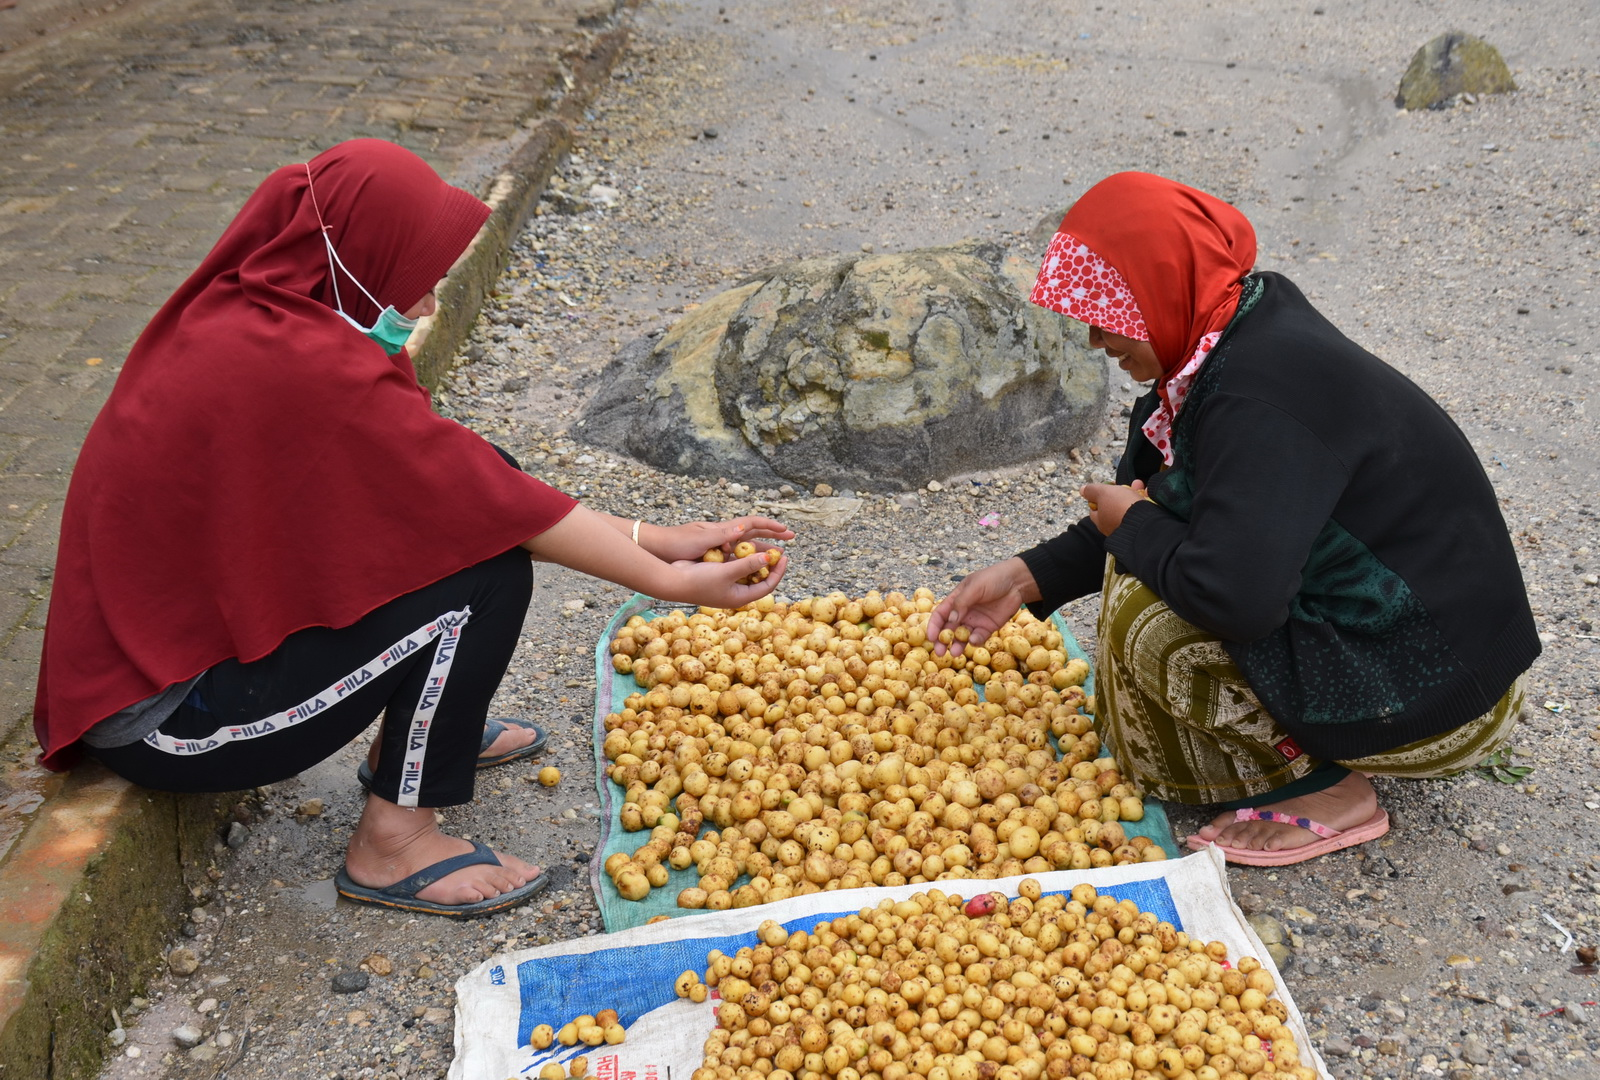 Indonesia, sorting spuds in a caldera - as you do...